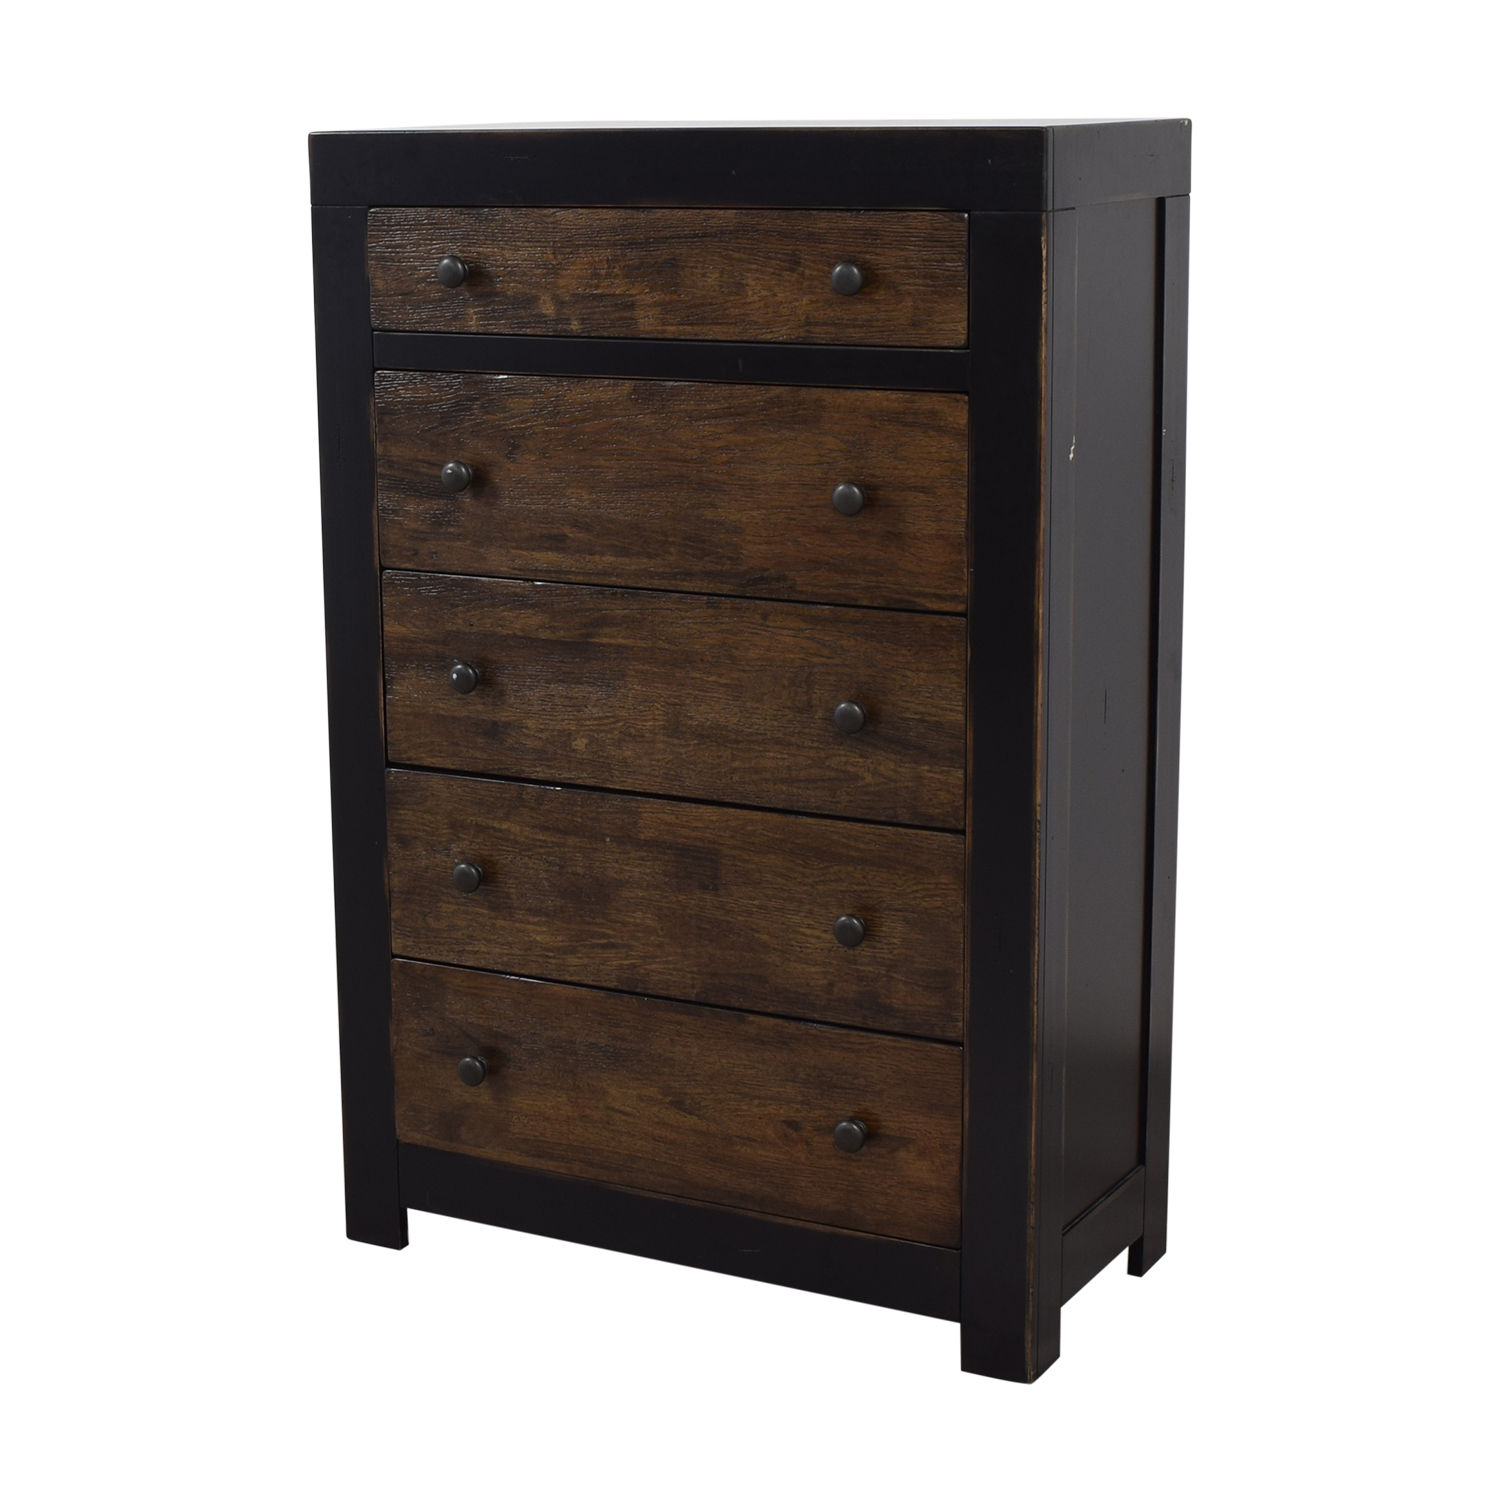 Ashley Furniture Ashley Furniture Five Drawer Tall Chest nj